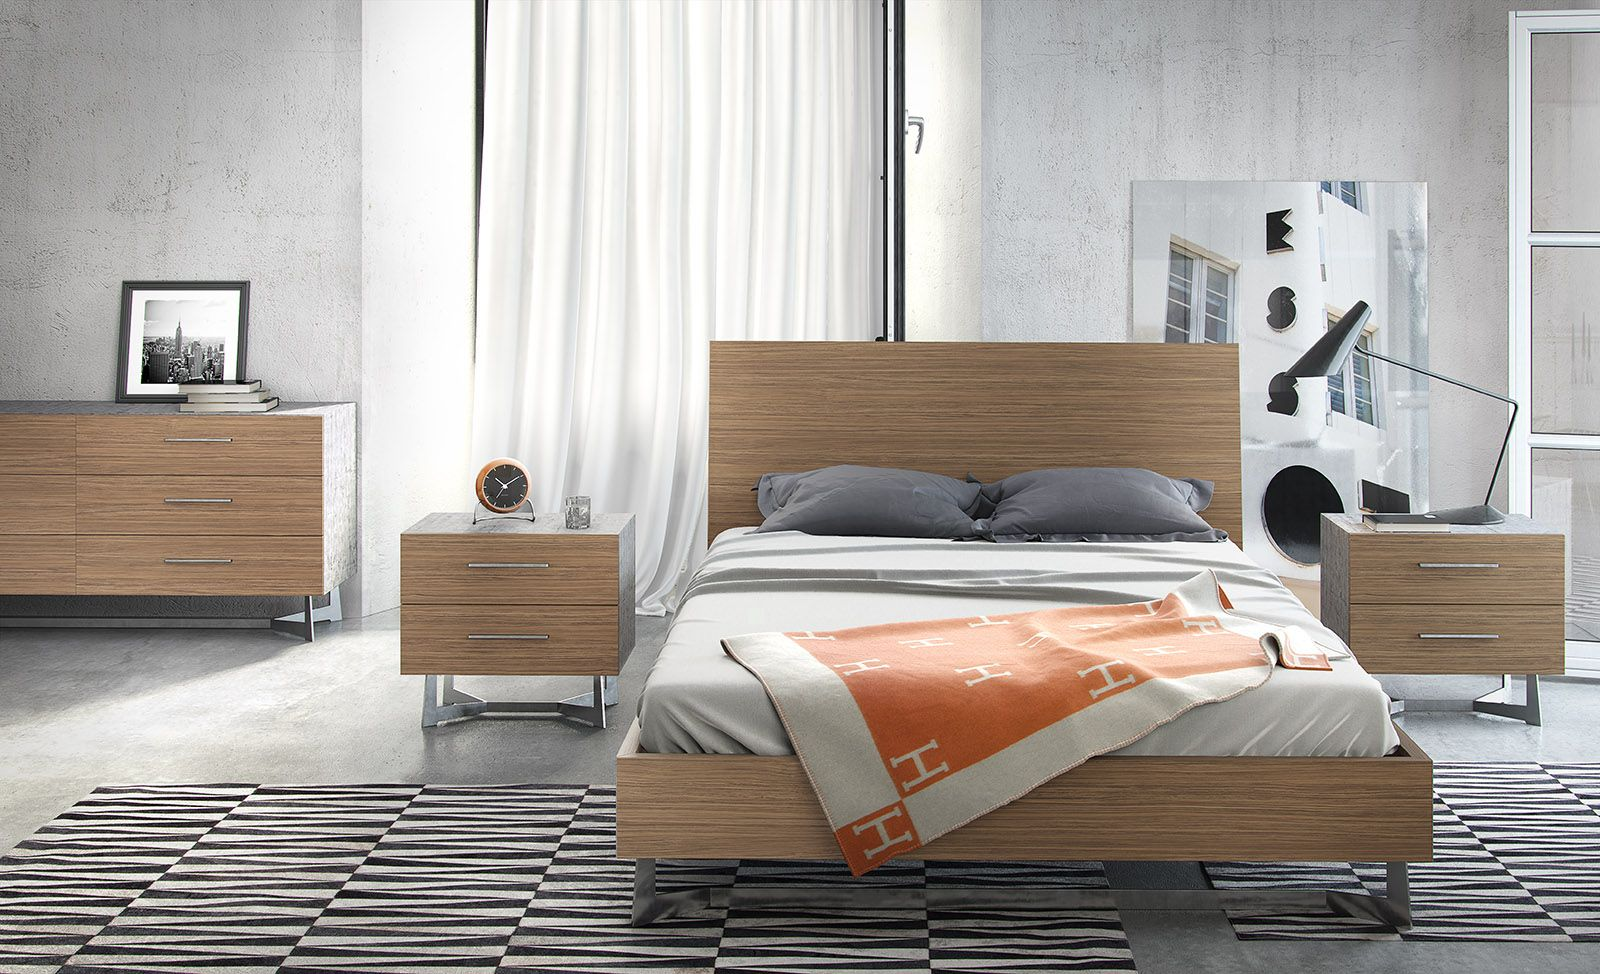 Imposing yet understated, the Broome bed's headboard